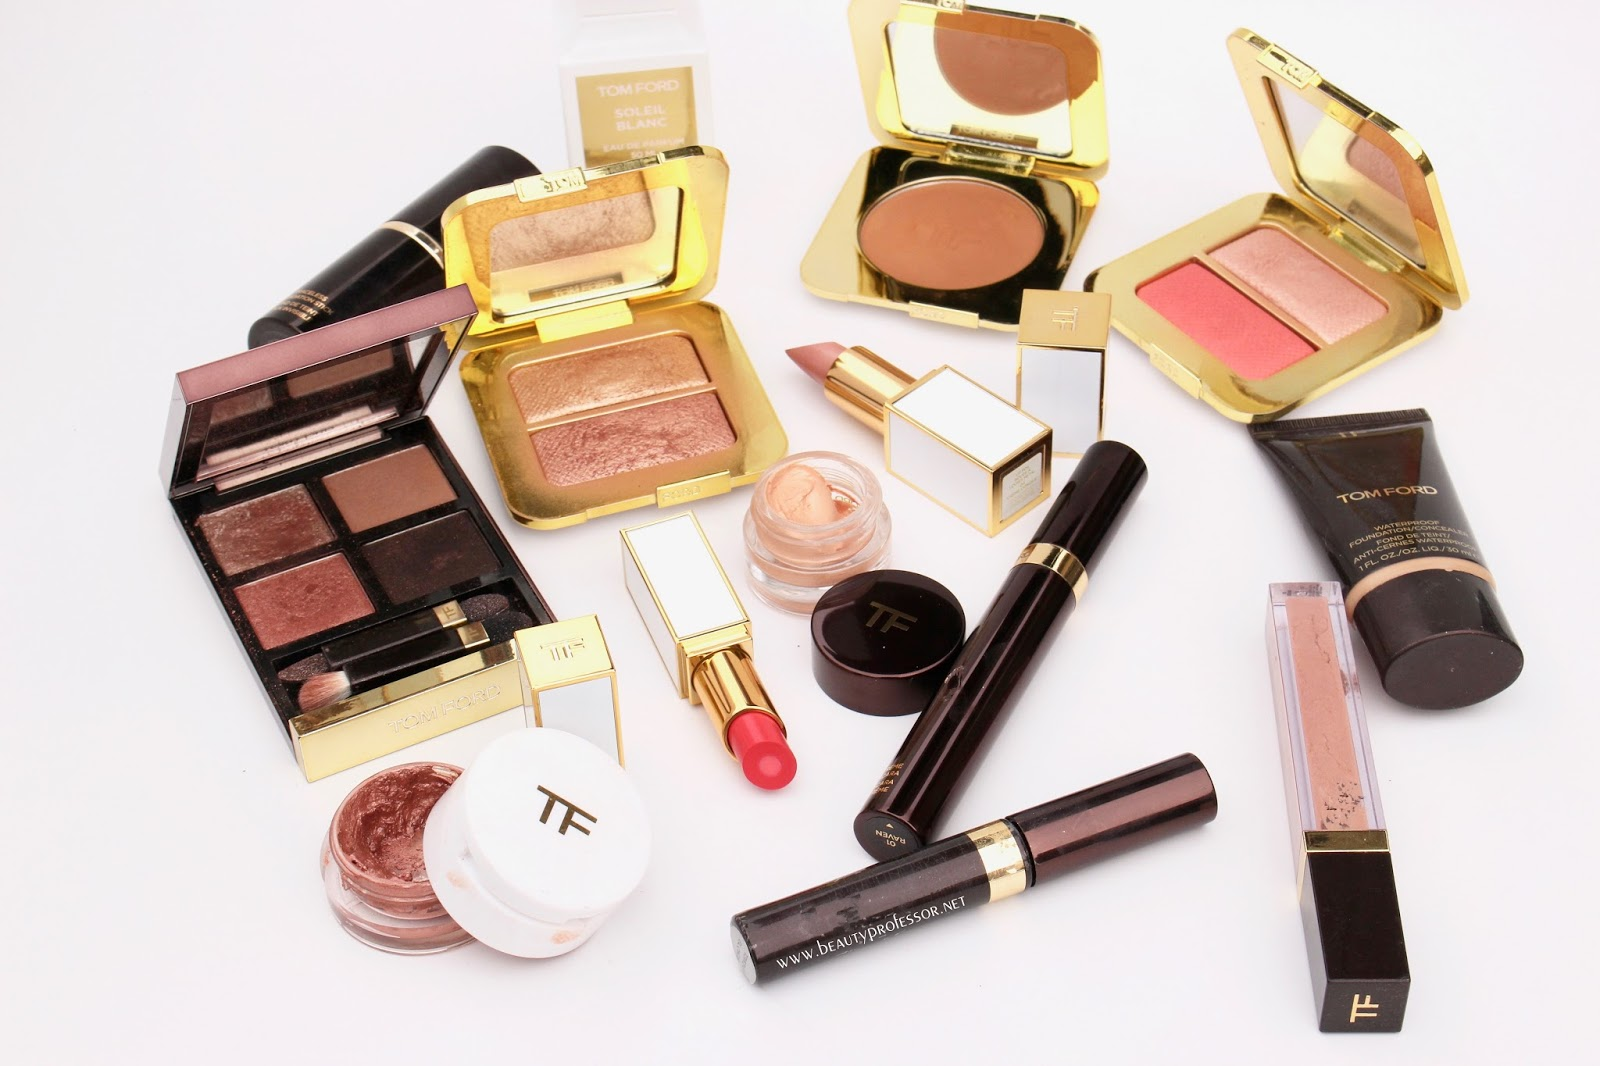 f2de4f3b43 Peachy Tom Ford Tones for Late Summer: At Home + On Heavy Rotation ...